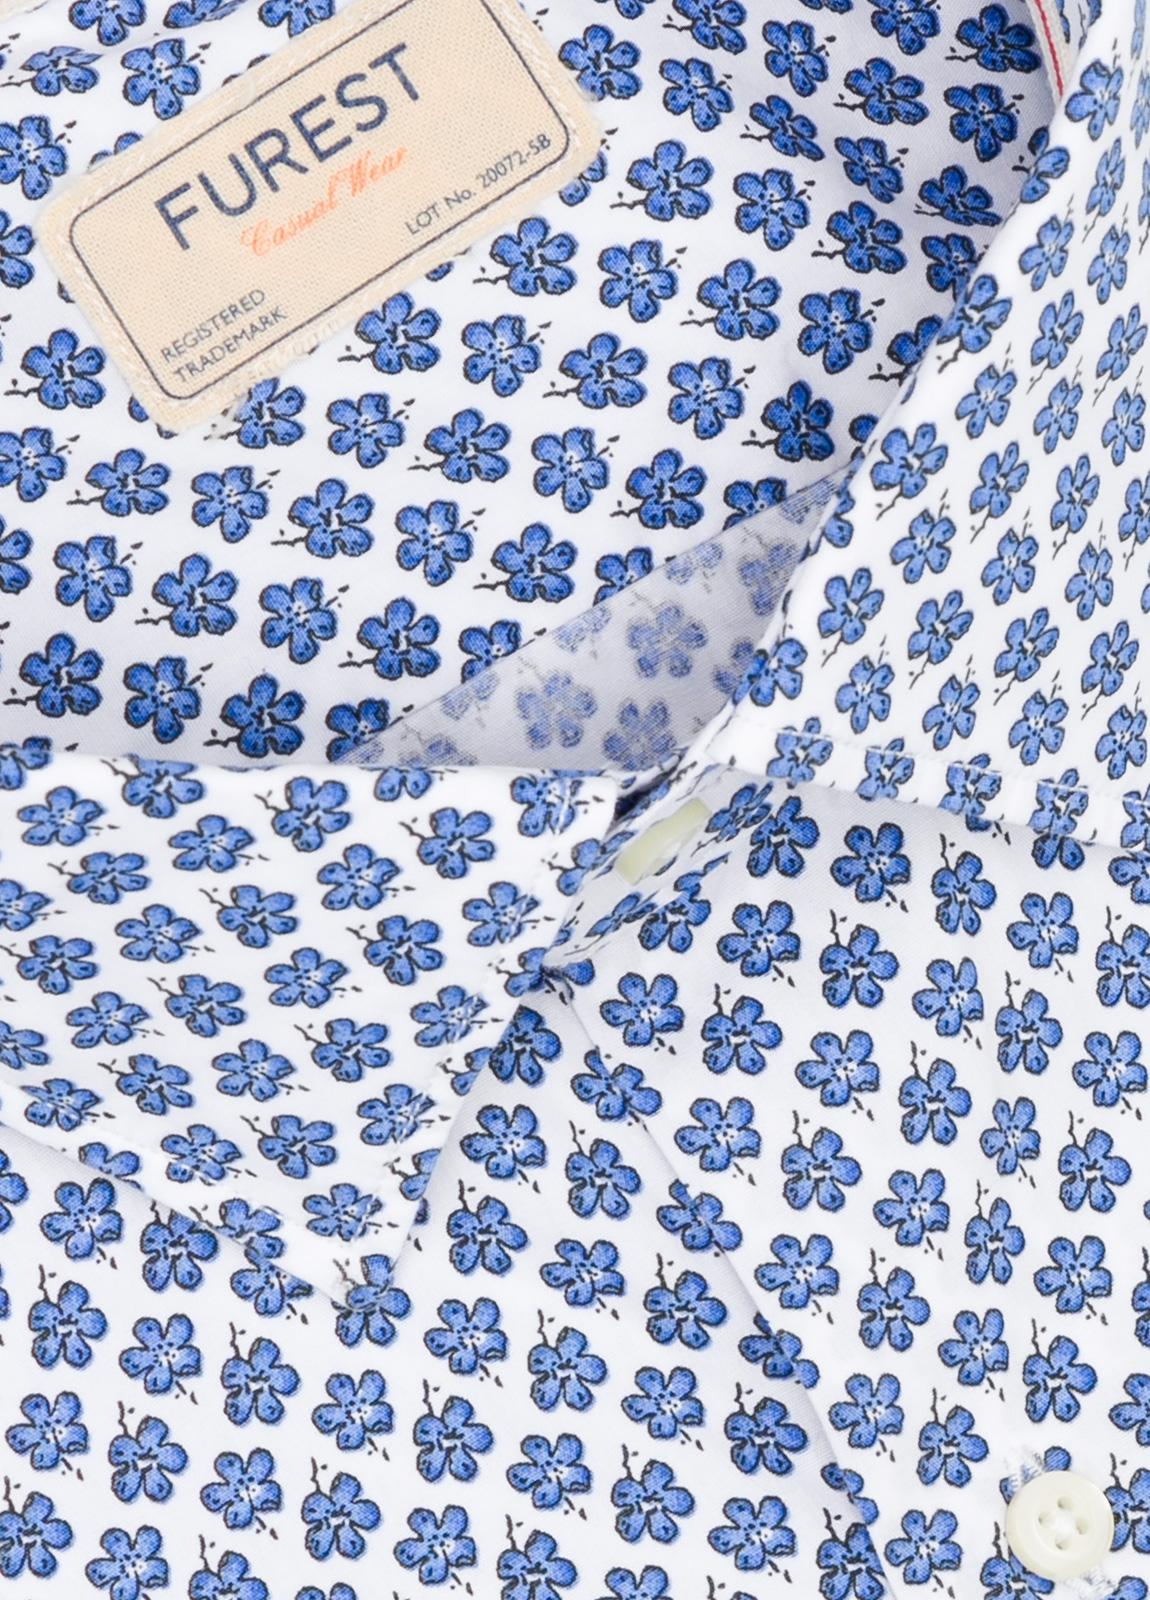 Camisa Casual Wear SLIM FIT Modelo PORTO estampado floral color azul. 100% Algodón. - Ítem1